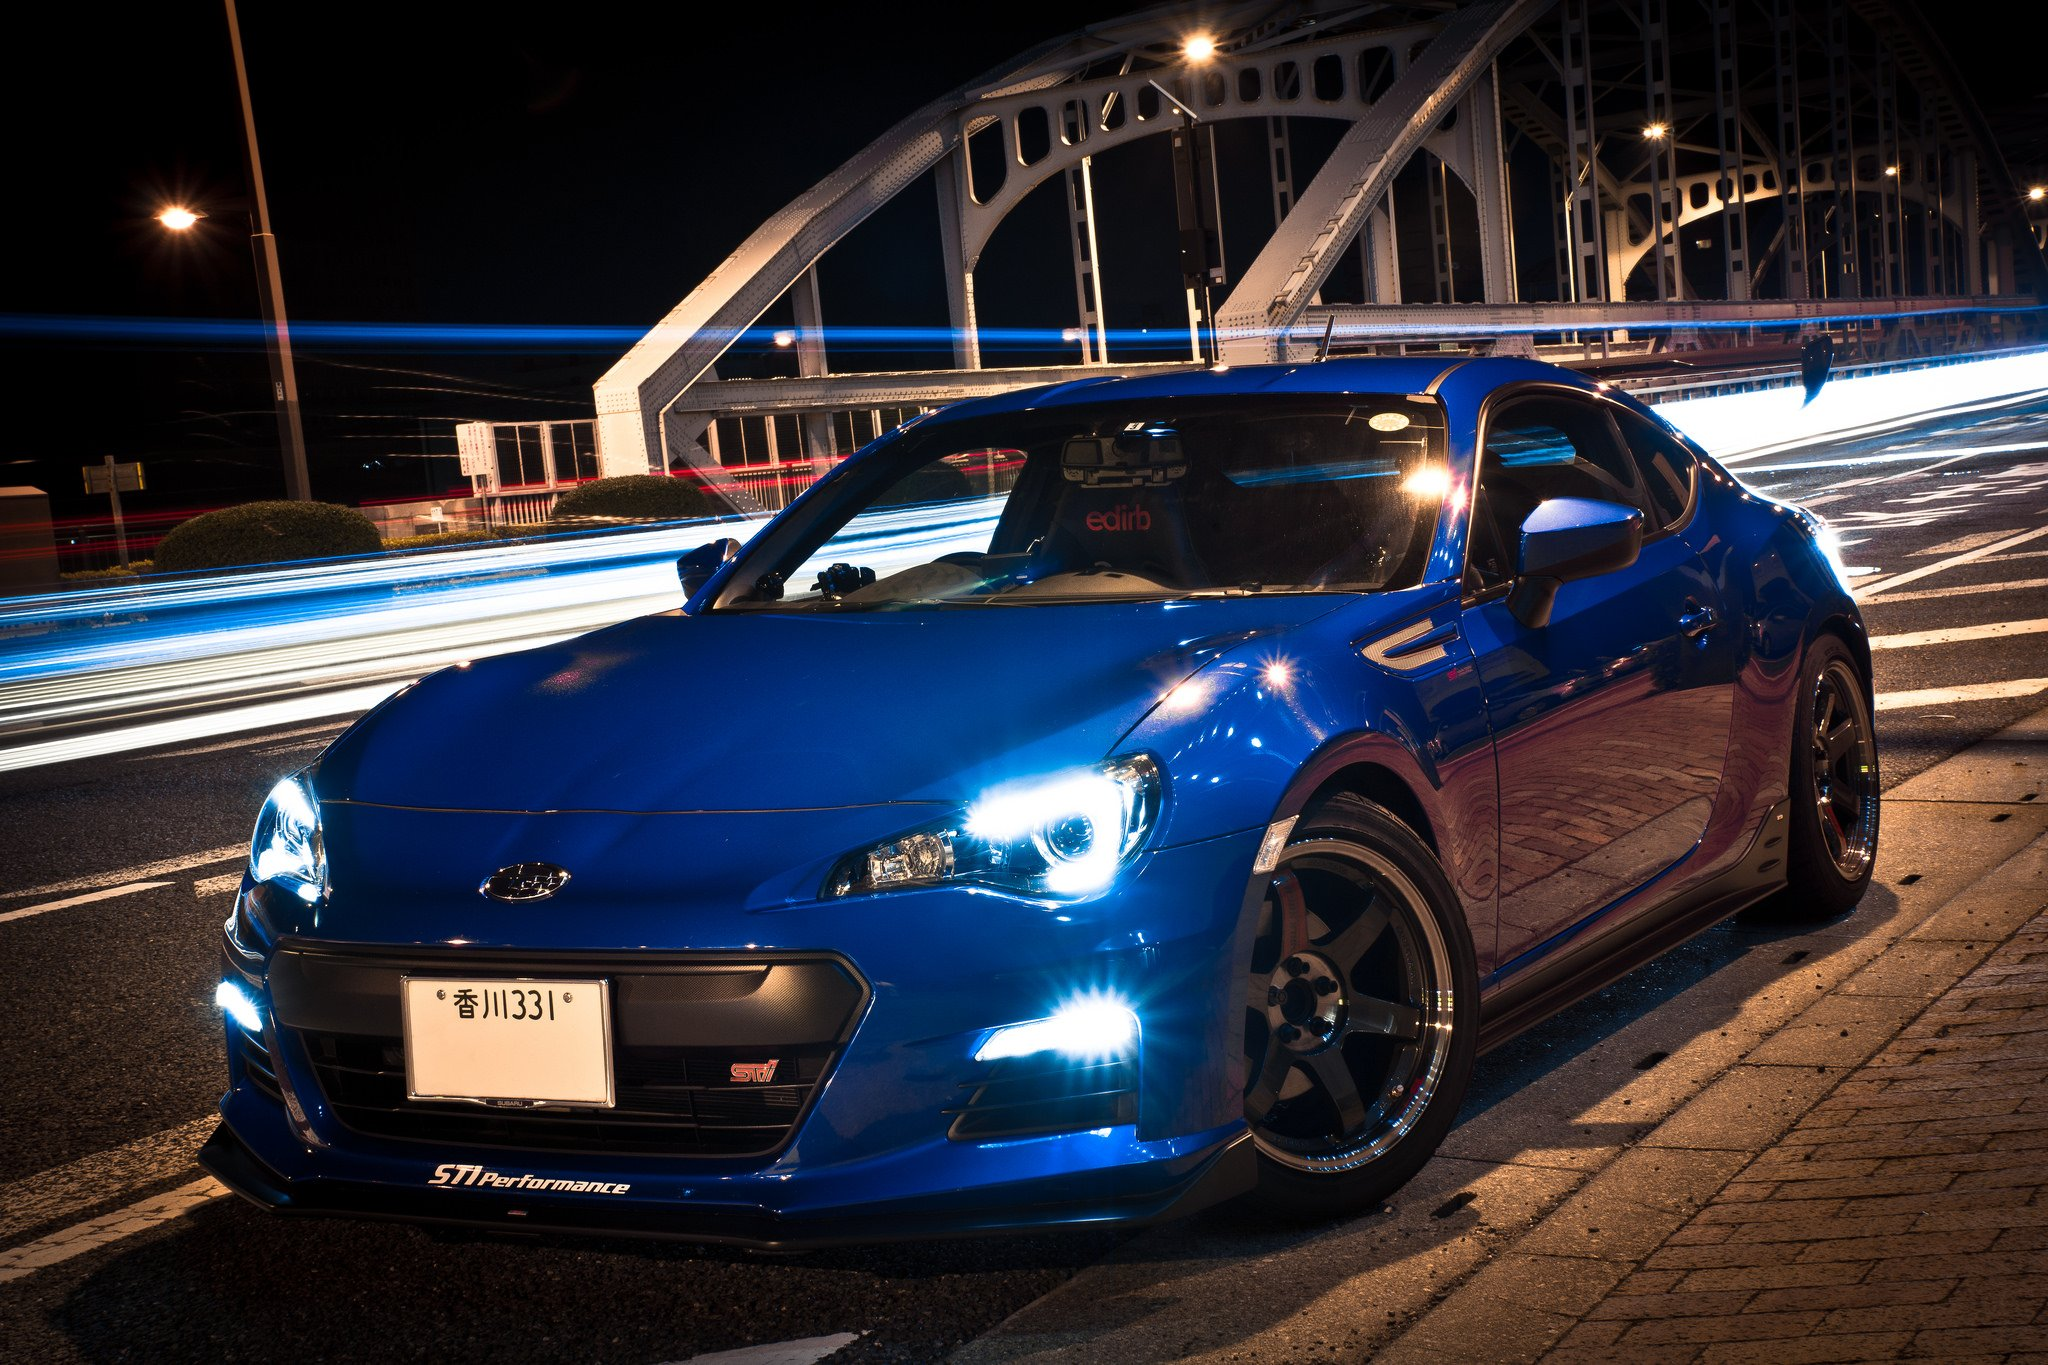 toyota gt86 scion frs subaru brz coupe tuning cars japan wallpaper 2048x1365 496975. Black Bedroom Furniture Sets. Home Design Ideas